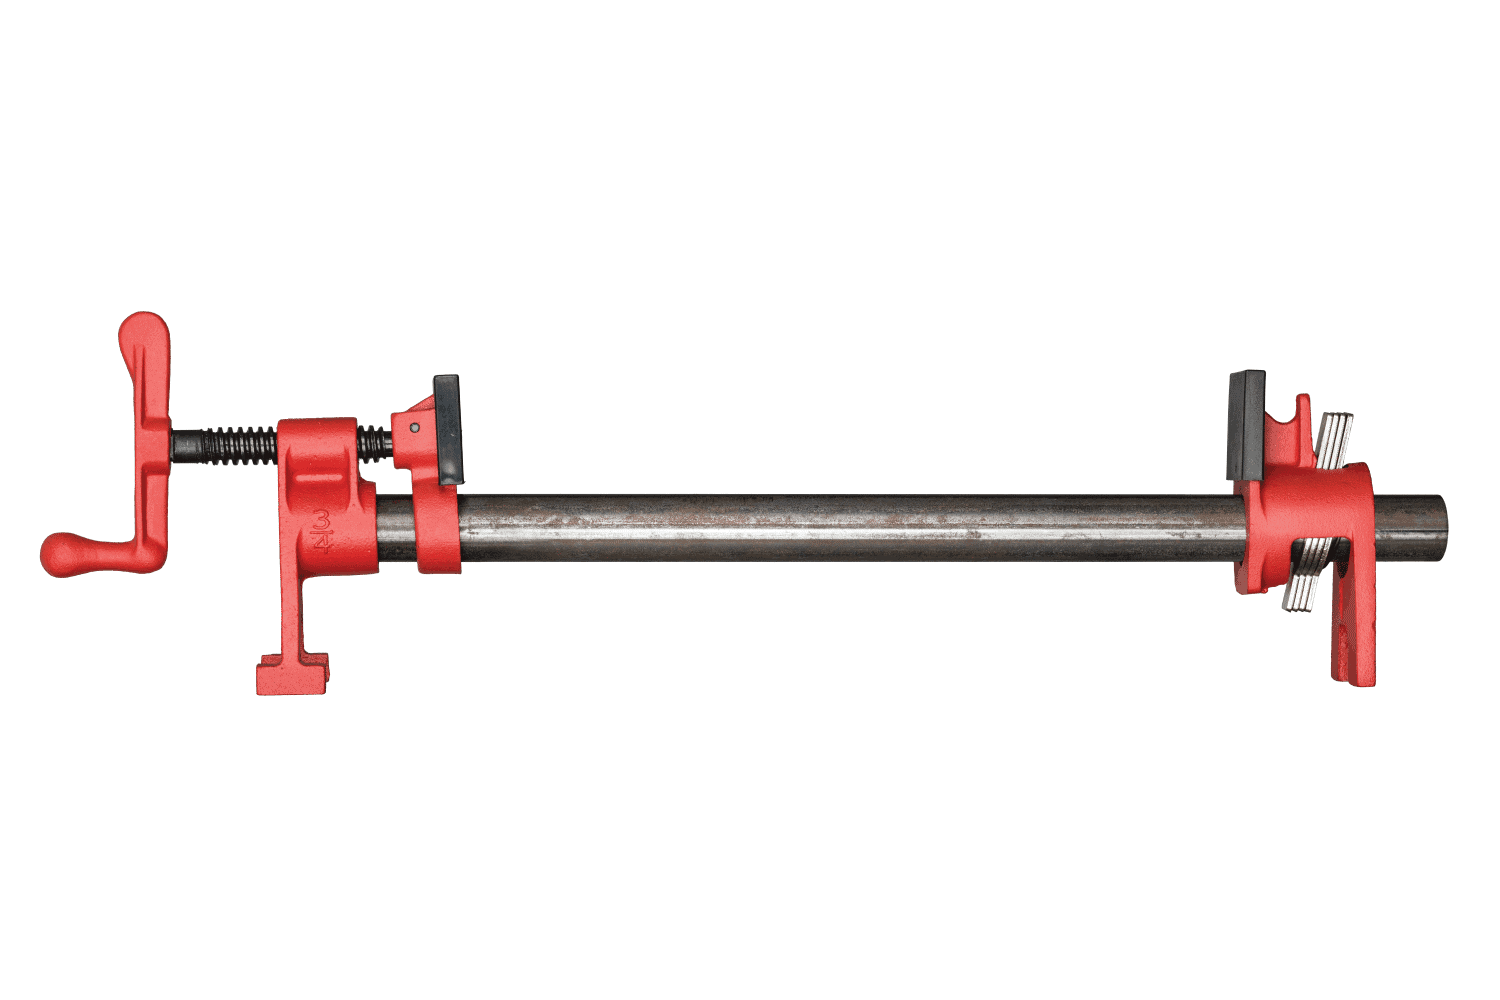 pipe clamp attached to a galvanized iron pipe in white background